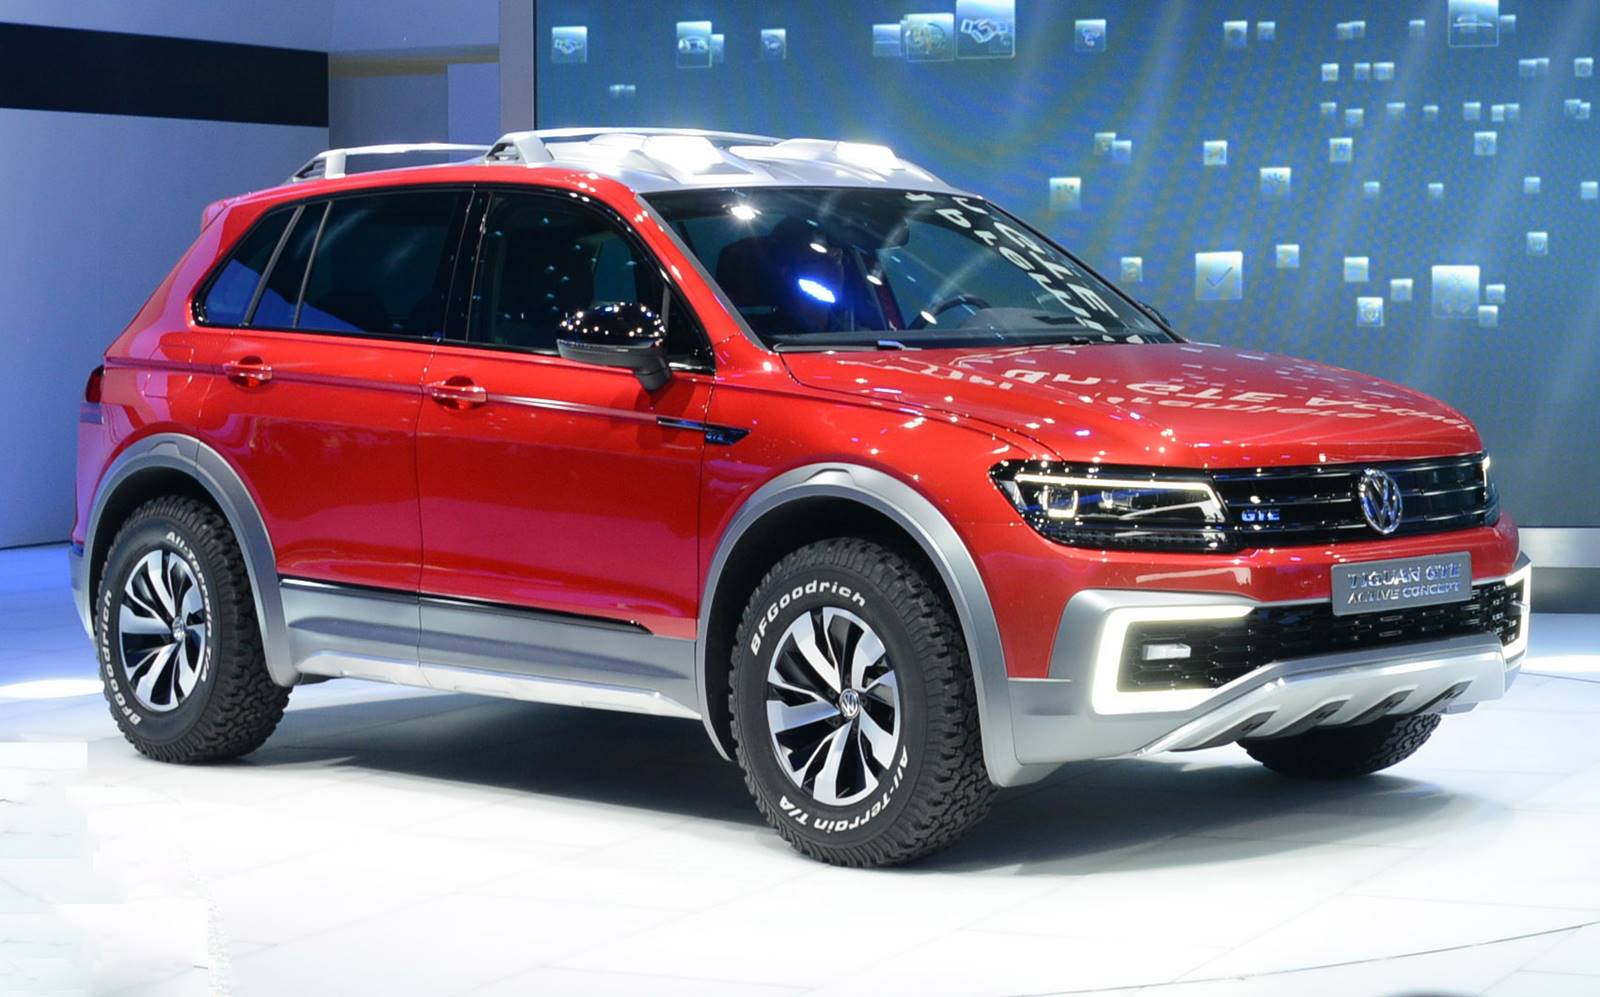 vw tiguan gte h brida apresentada no sal o de detroit car blog br. Black Bedroom Furniture Sets. Home Design Ideas